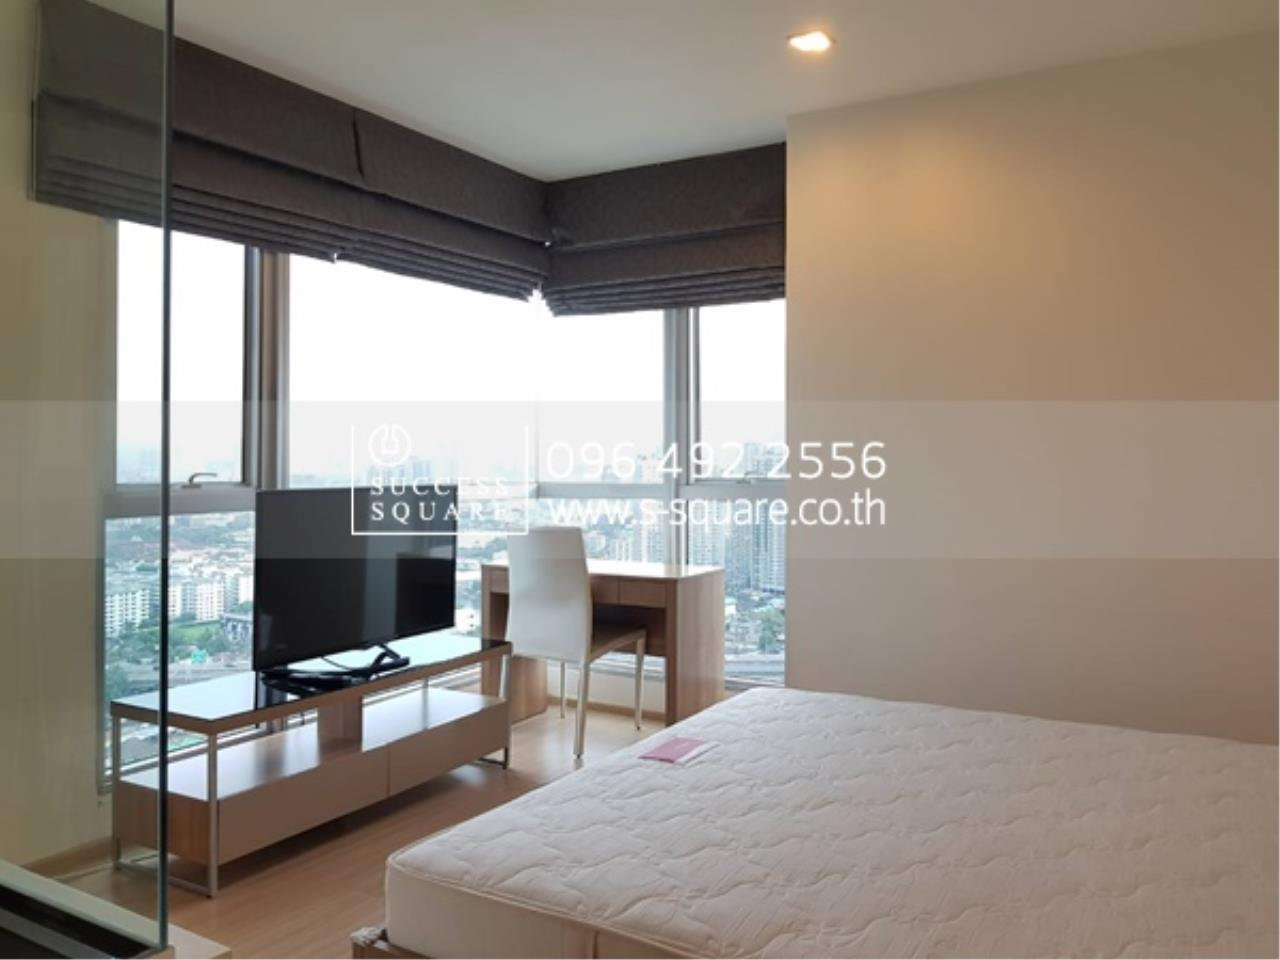 Success Square Agency's Rhythm Sukhumvit, Condo For Sale 2 Bedrooms 1